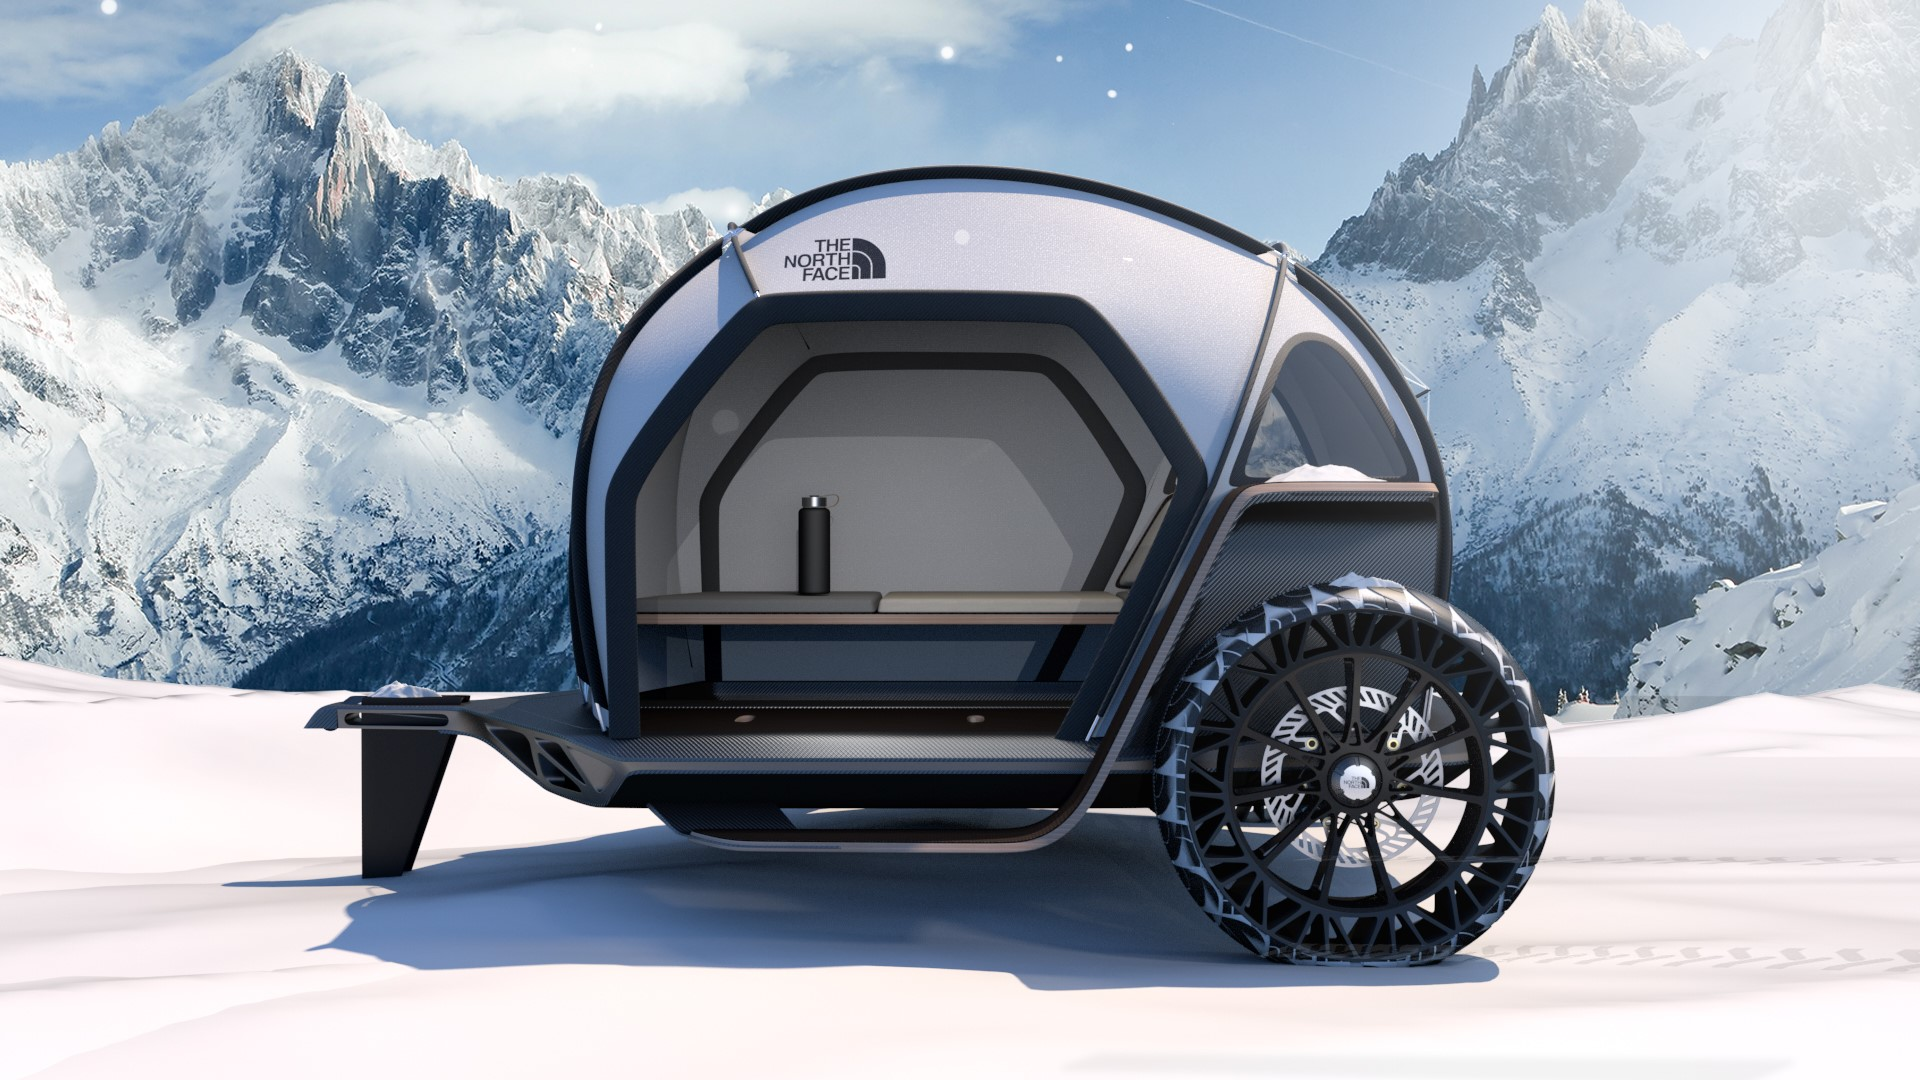 BMW North Face Camper Concept (2)